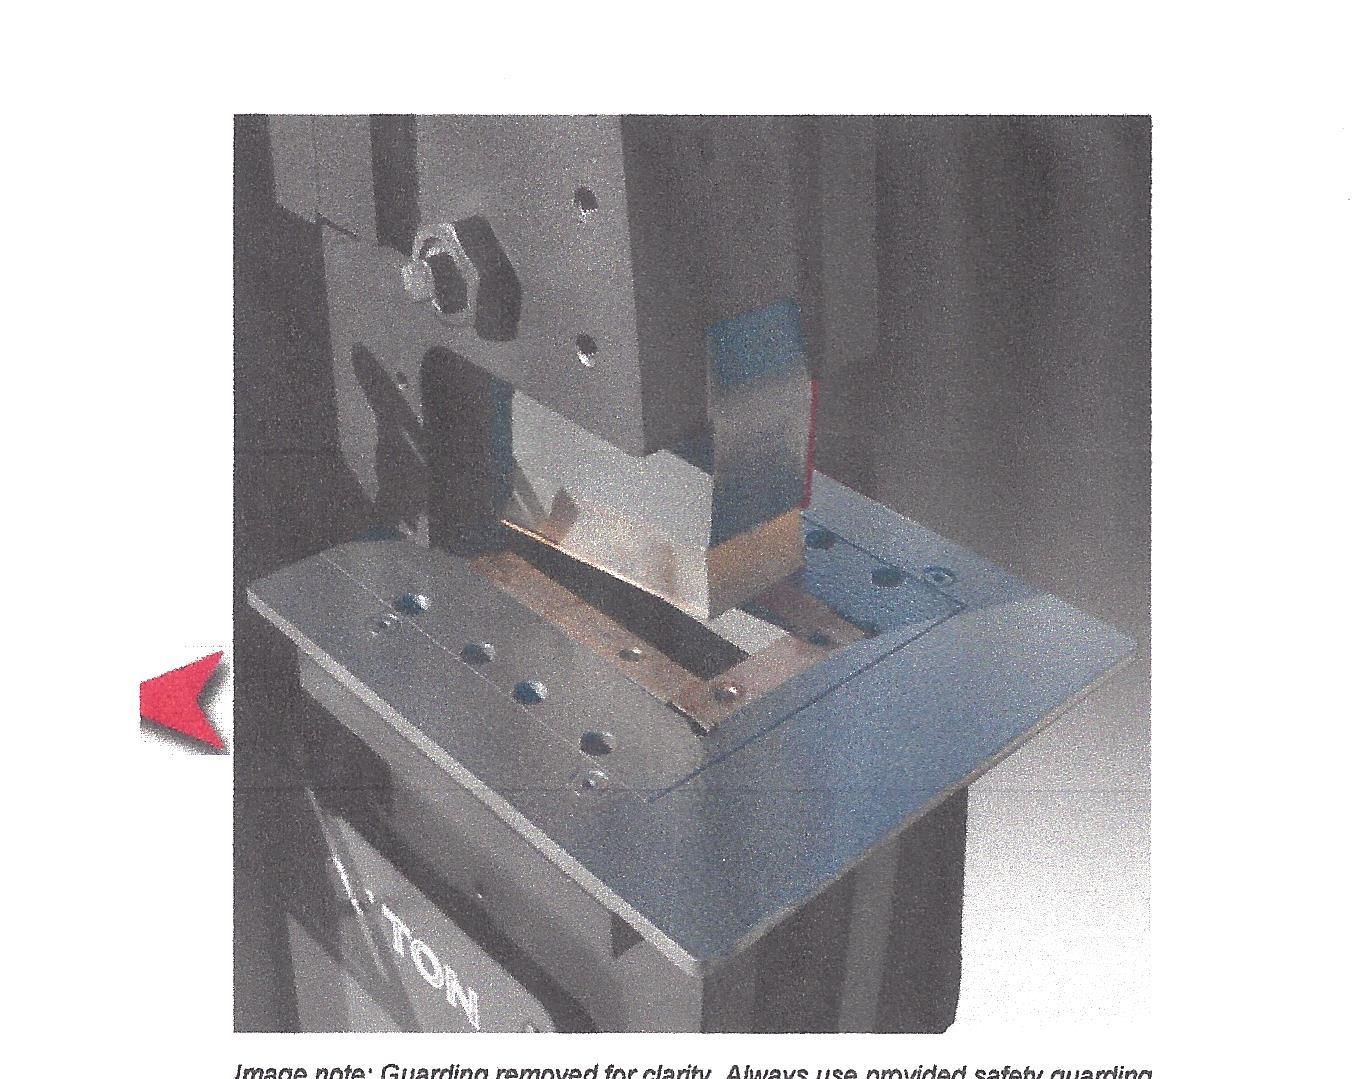 Edwards replacement Coper Notcher Blades for 25, 40 and 55 ton machines